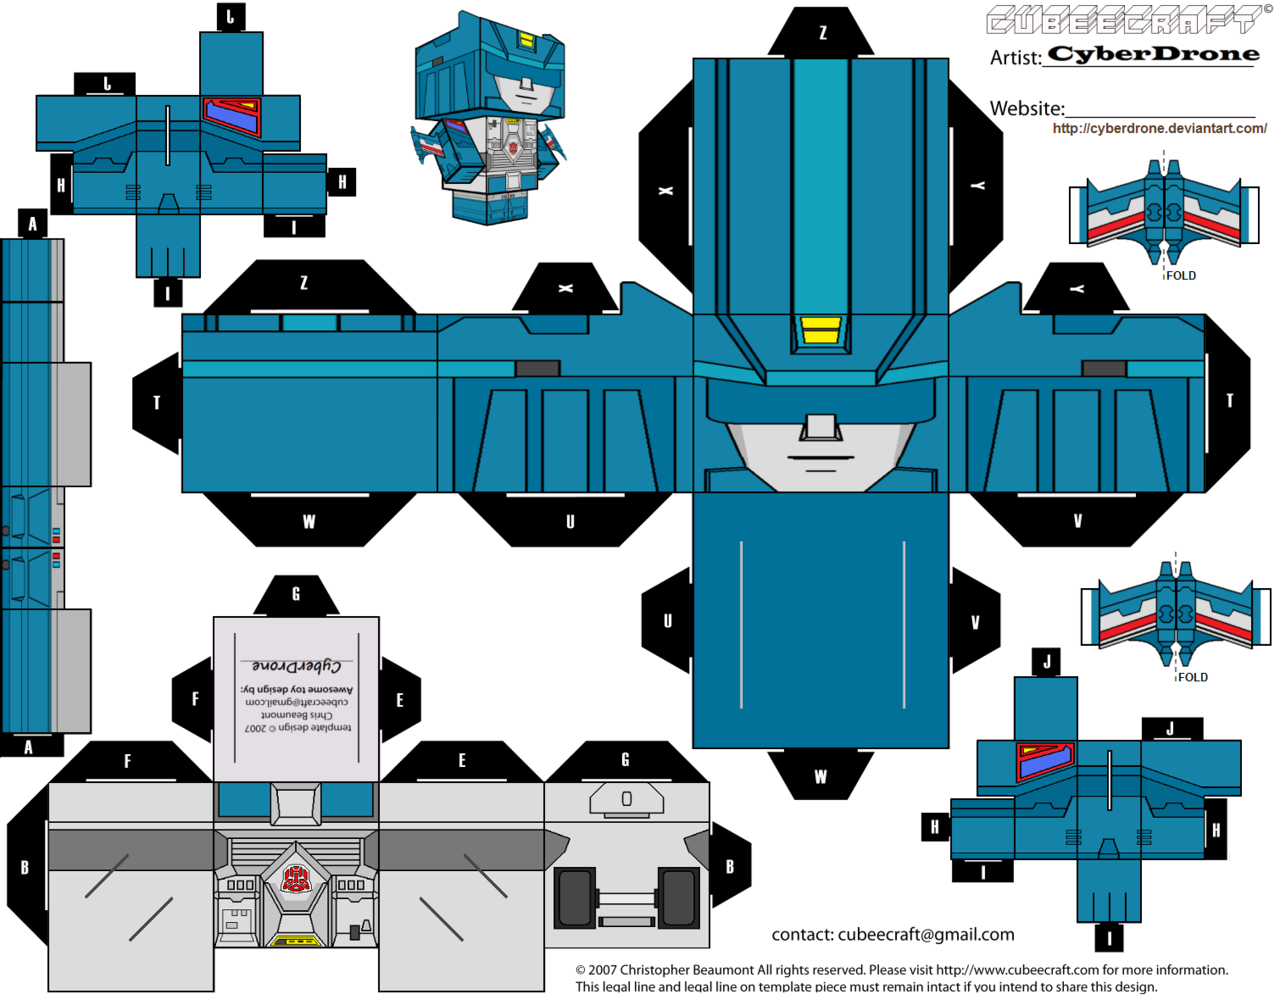 Cut and paste crafts geekvariety oh snap some transformers custom transformers cut out templates of paper toys ive made all my transformers cubeecraft fan art designs are based on characters originally from hasbro pronofoot35fo Choice Image